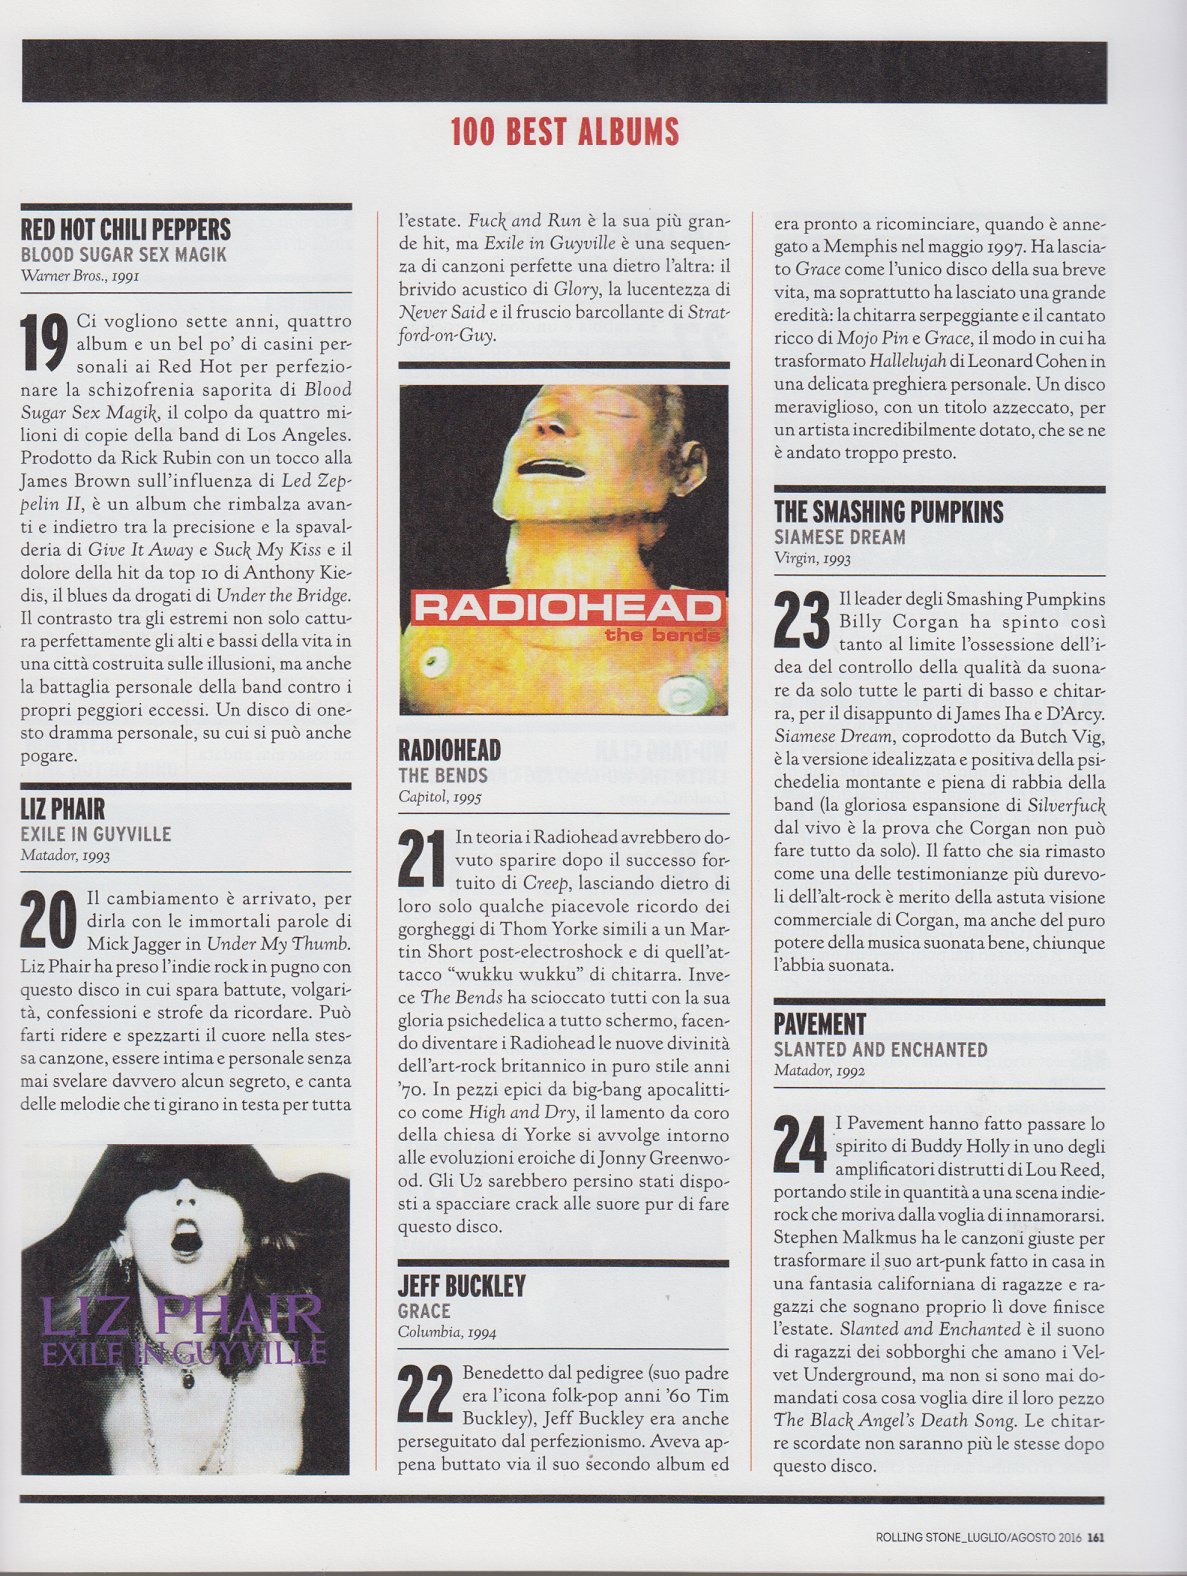 rolling-stone-italia-rhcp-july-2016-best-albums-90s